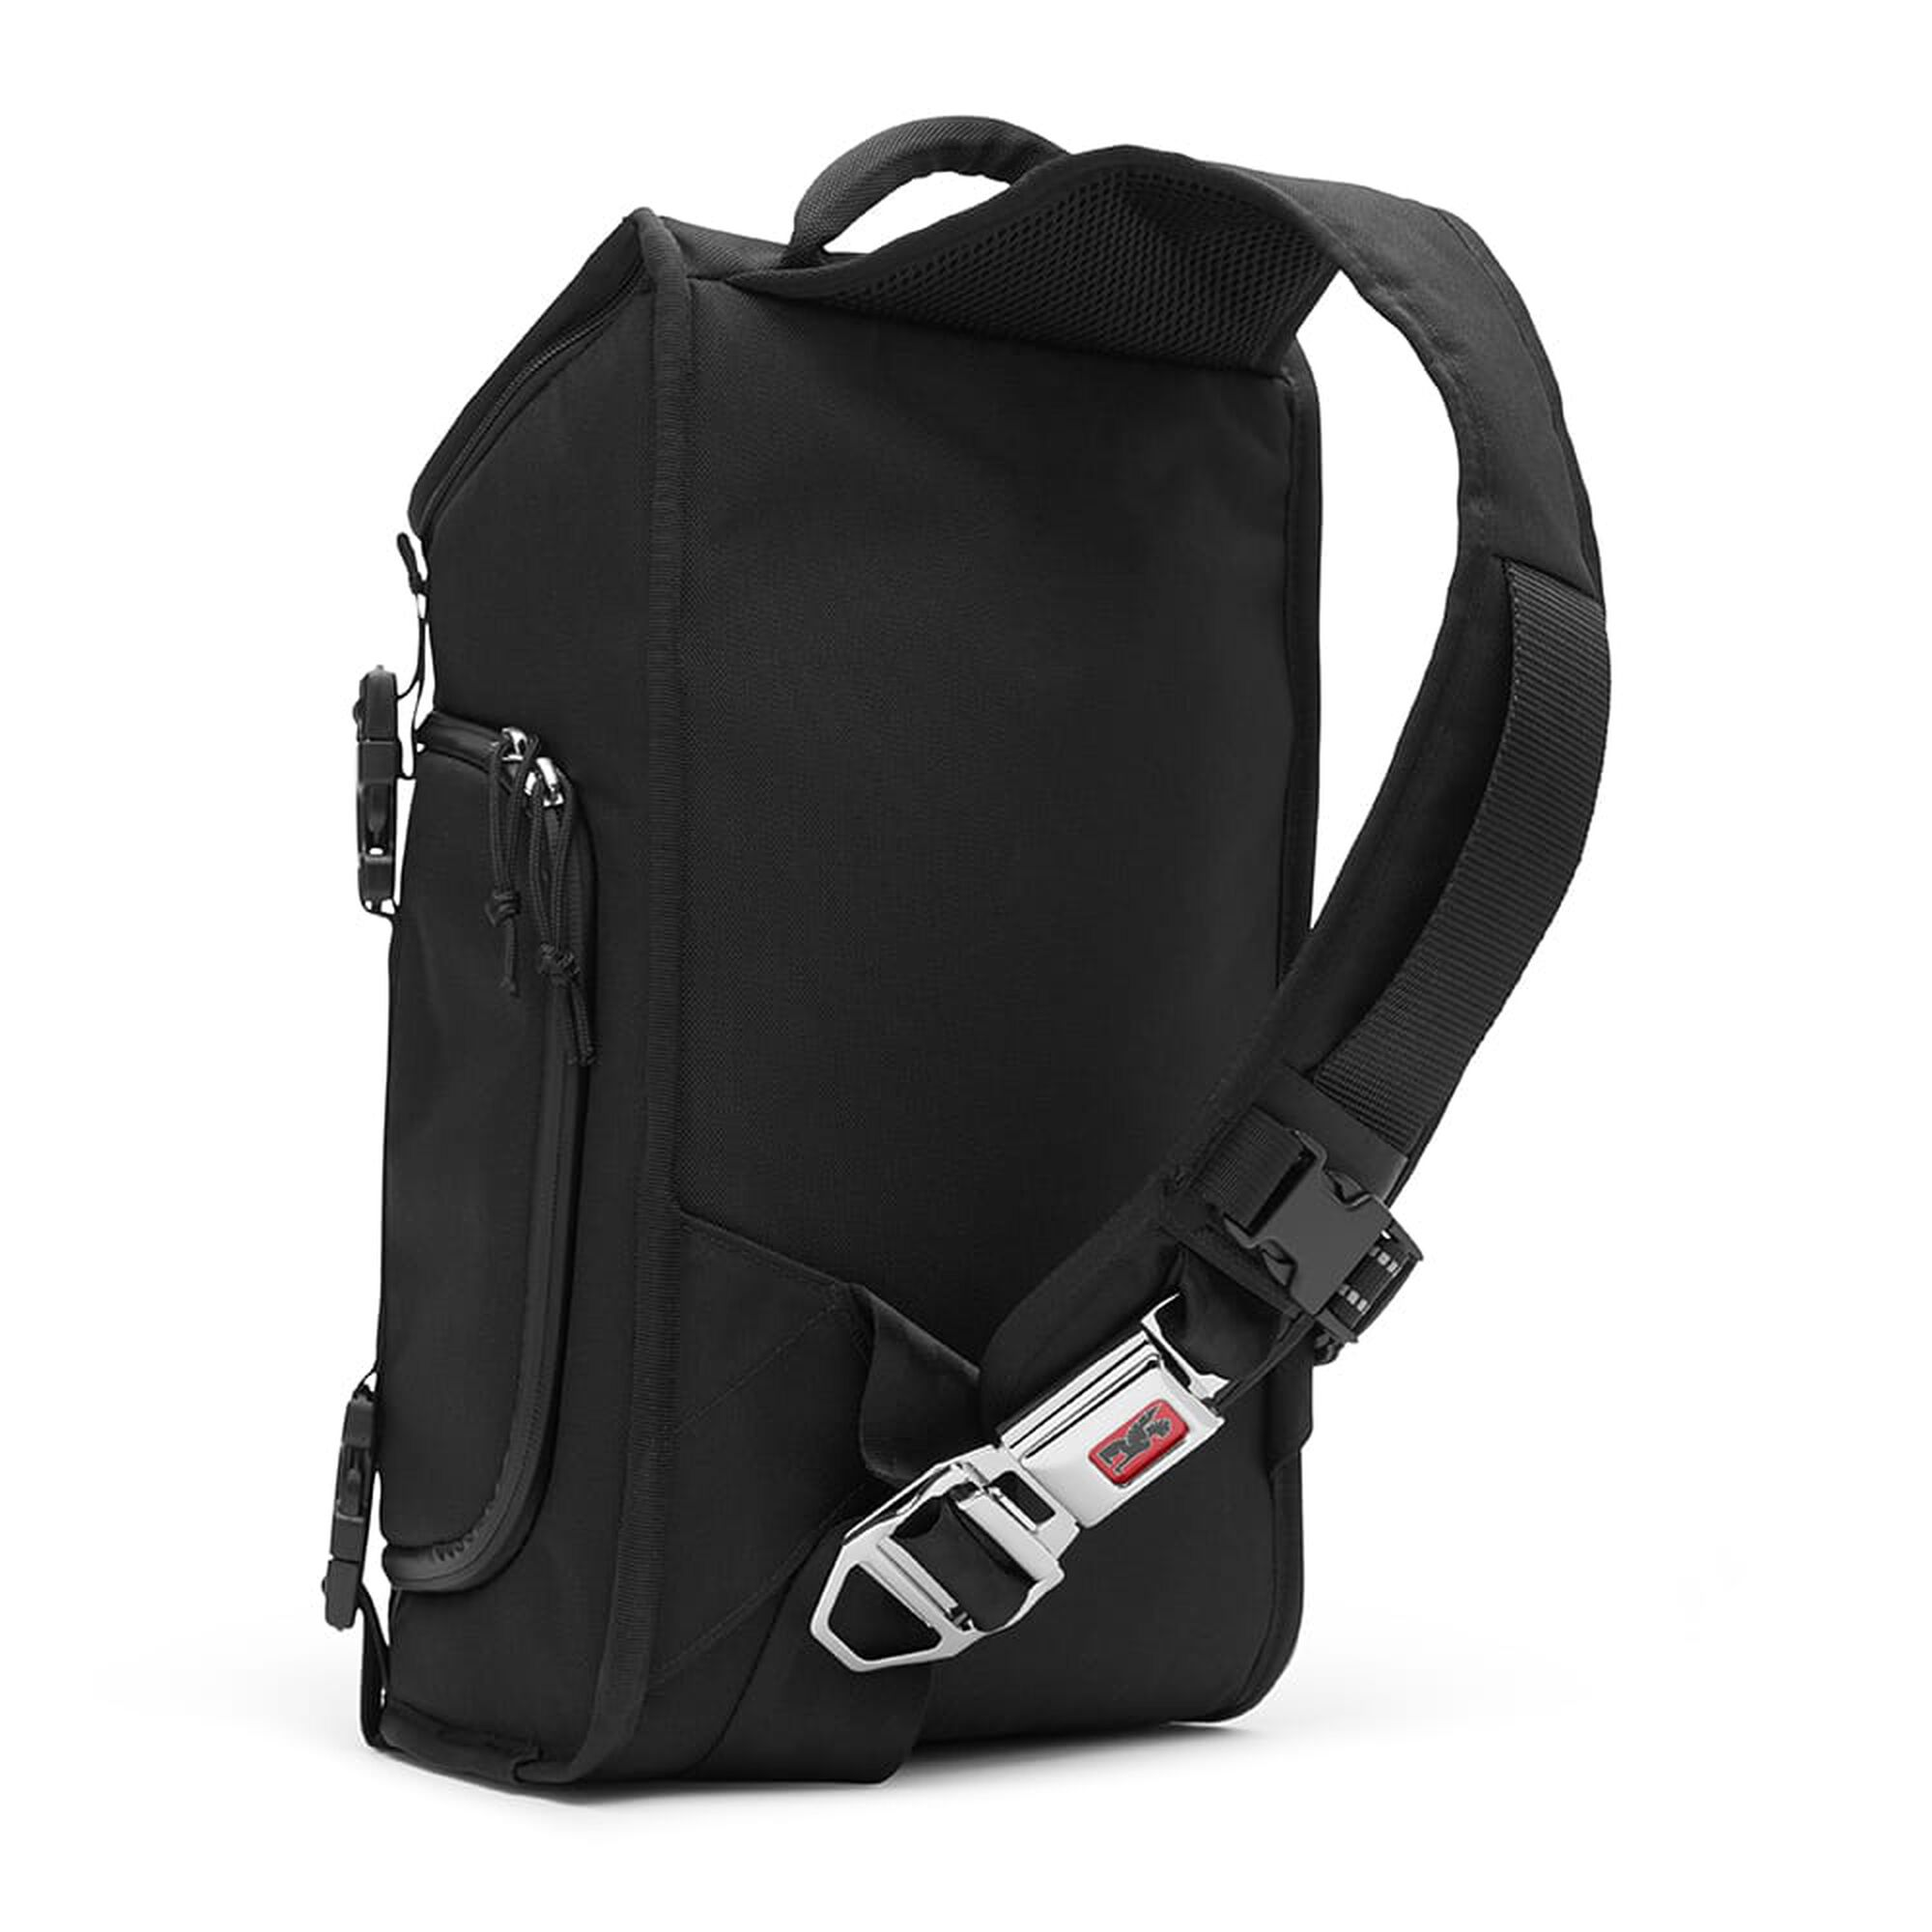 Niko Messenger Bag In Black Small View